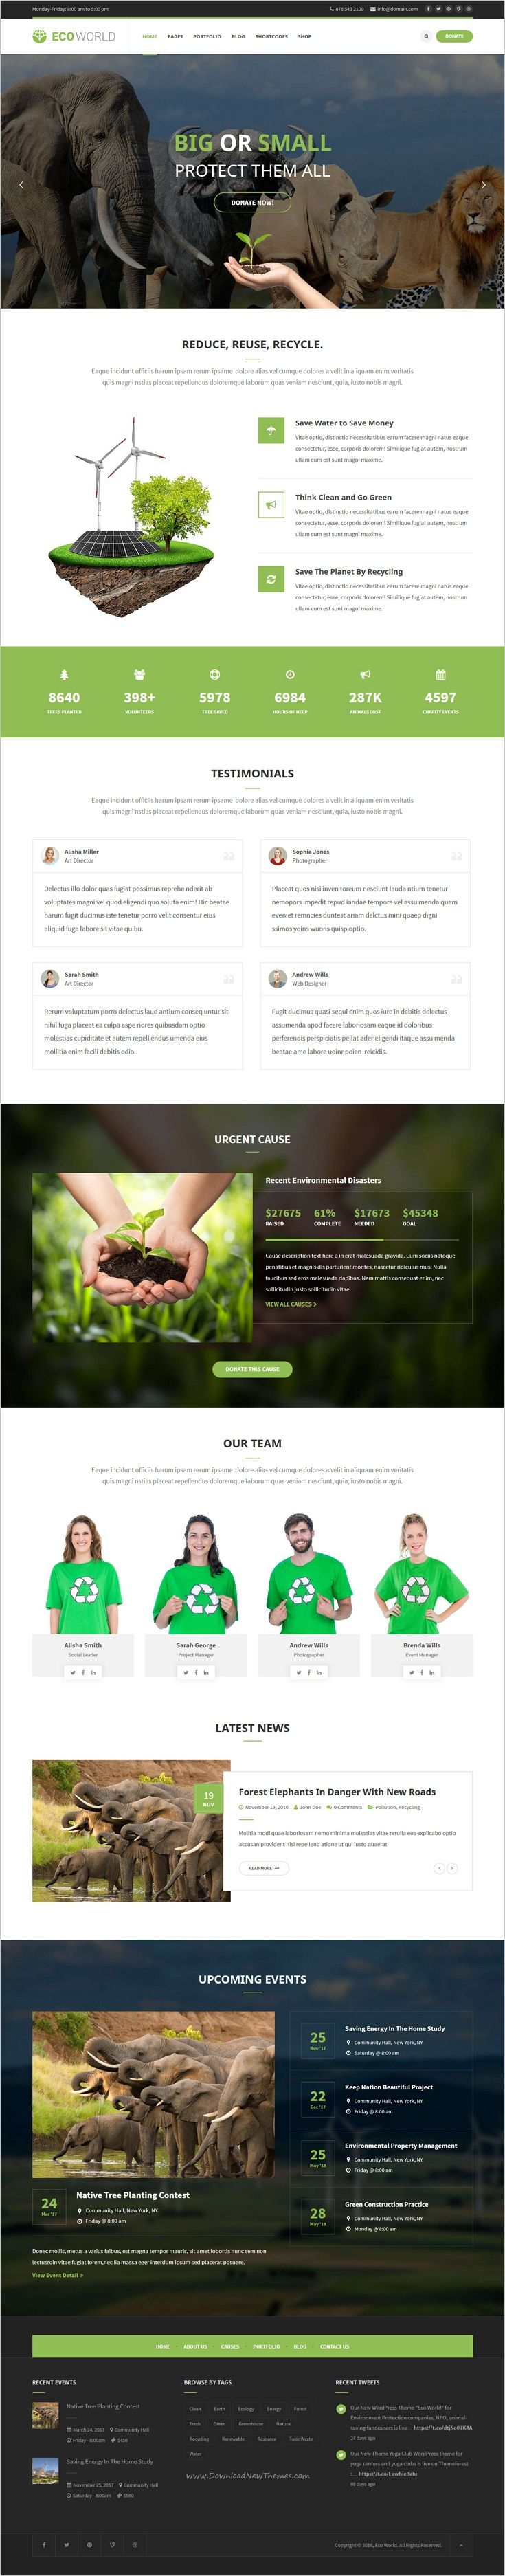 Eco World is a wonderful responsive #WordPress theme for #environment protection companies or #nonprofit organizations website download now➩ https://themeforest.net/item/eco-world-nature-ecology-ngo-wordpress-theme/18967402?ref=Datasata